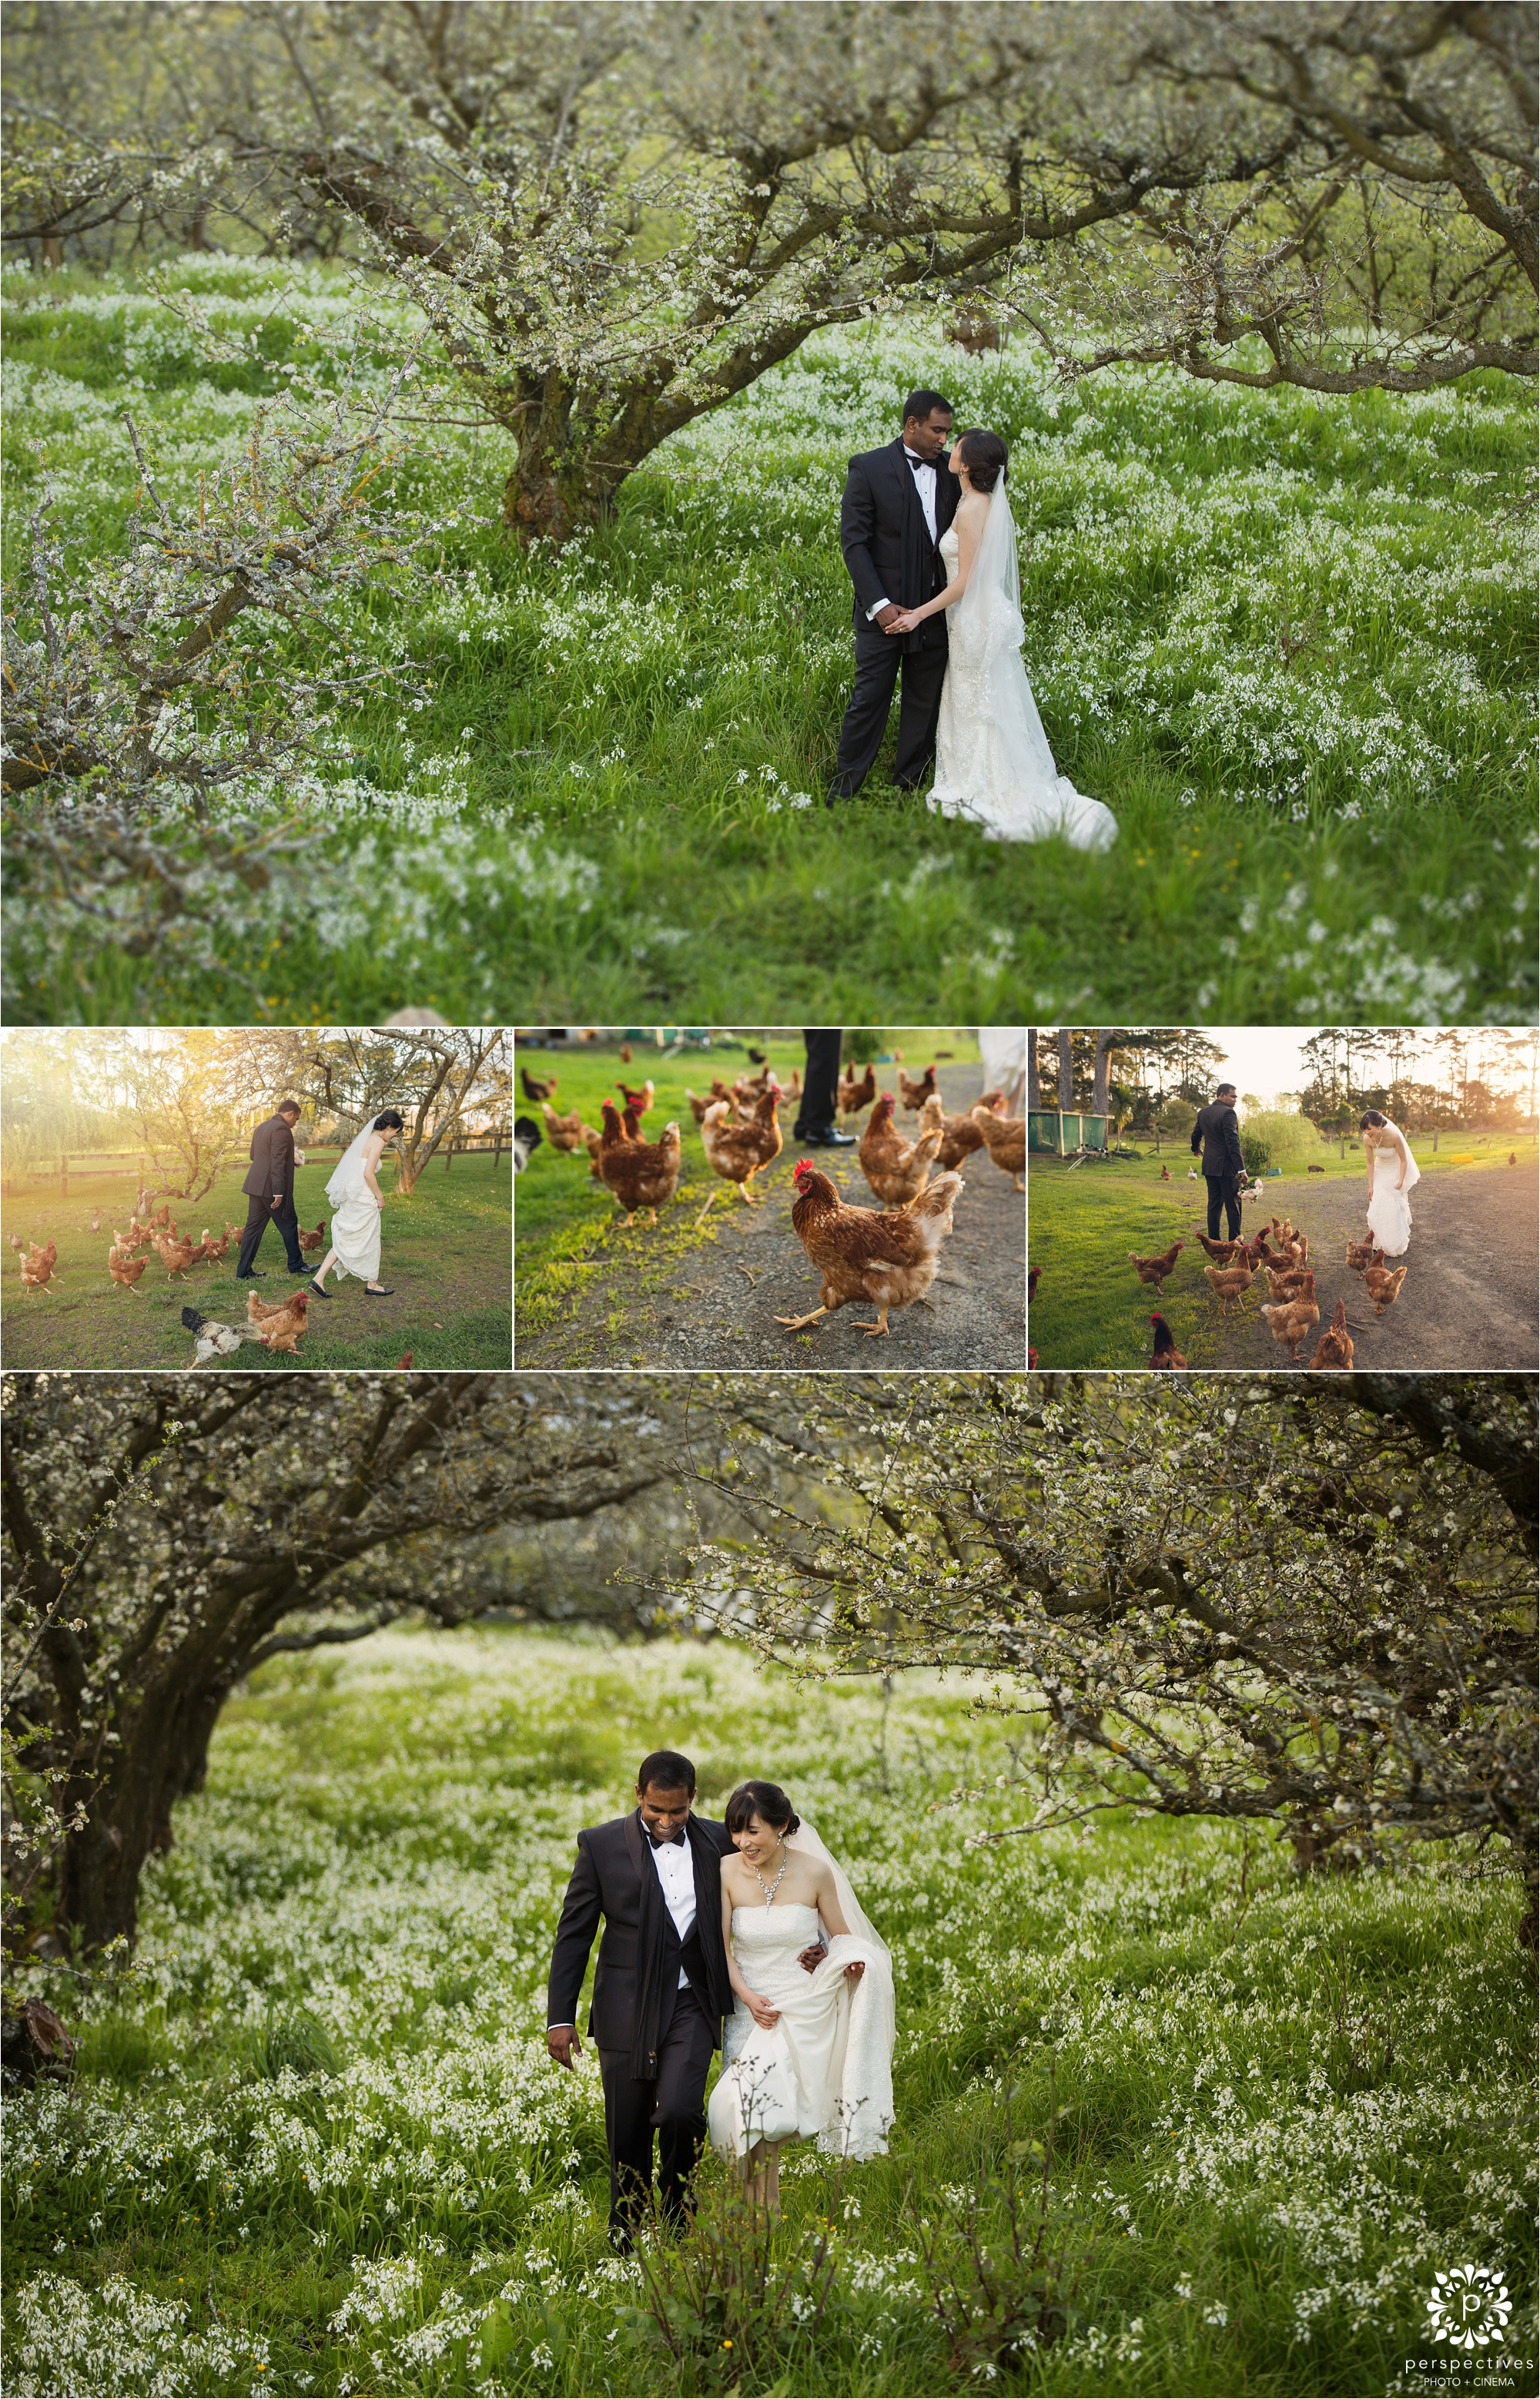 Auckland cherry blossom wedding location